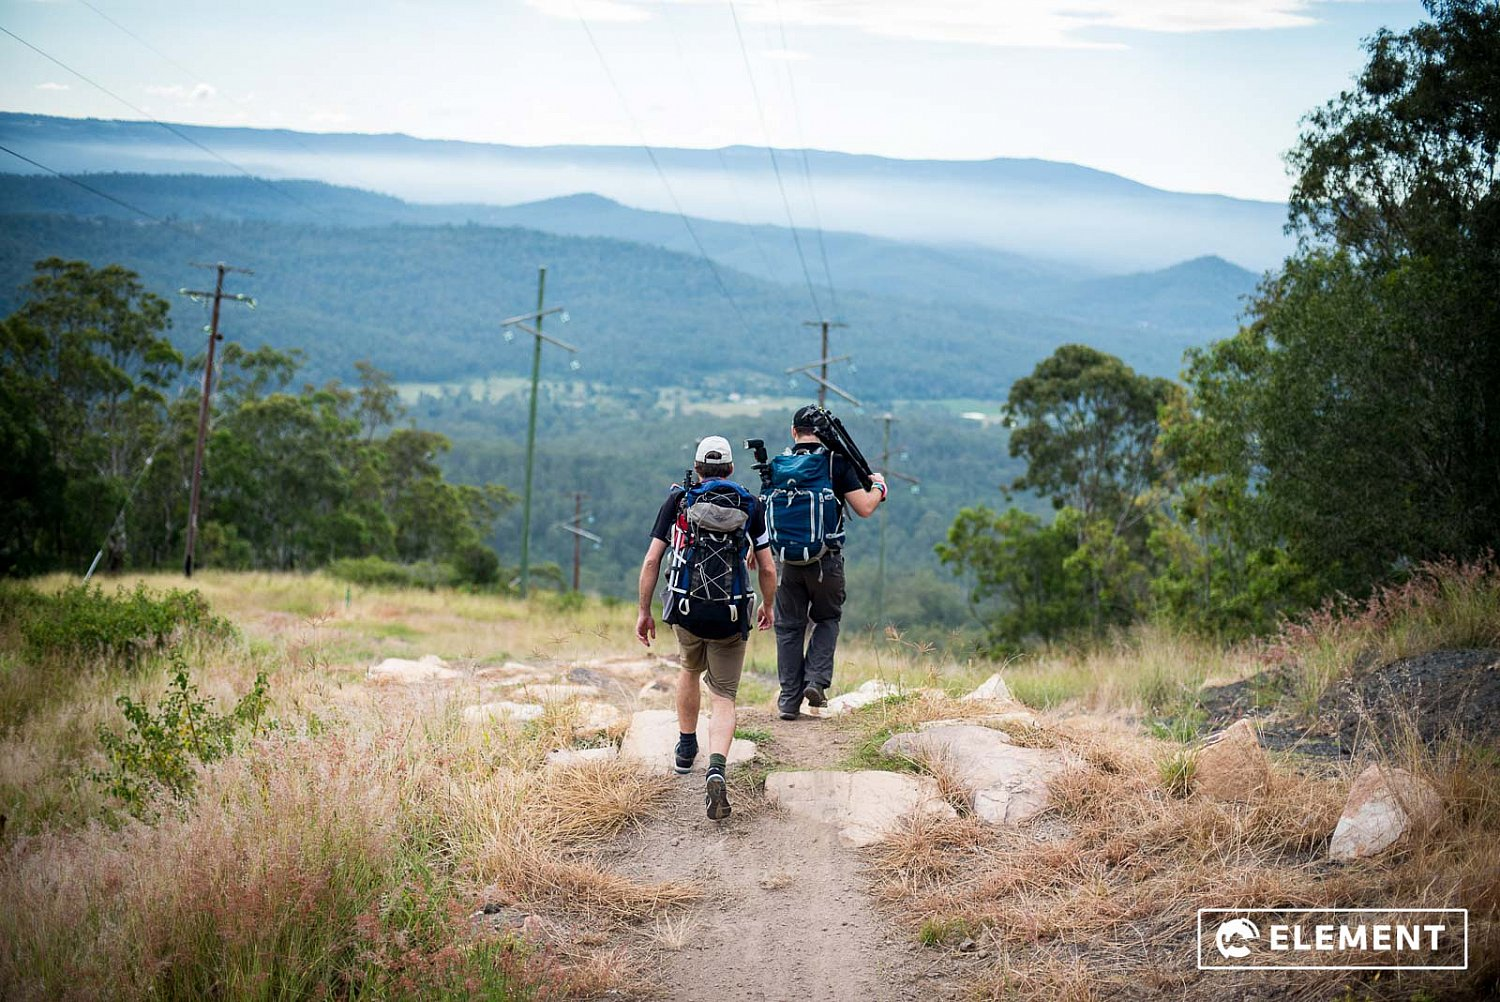 MTB Ride and Shoot Photography Workshop (1st March 2020) | MPM_3003_Mike_Molloy_28-05-2017.jpg